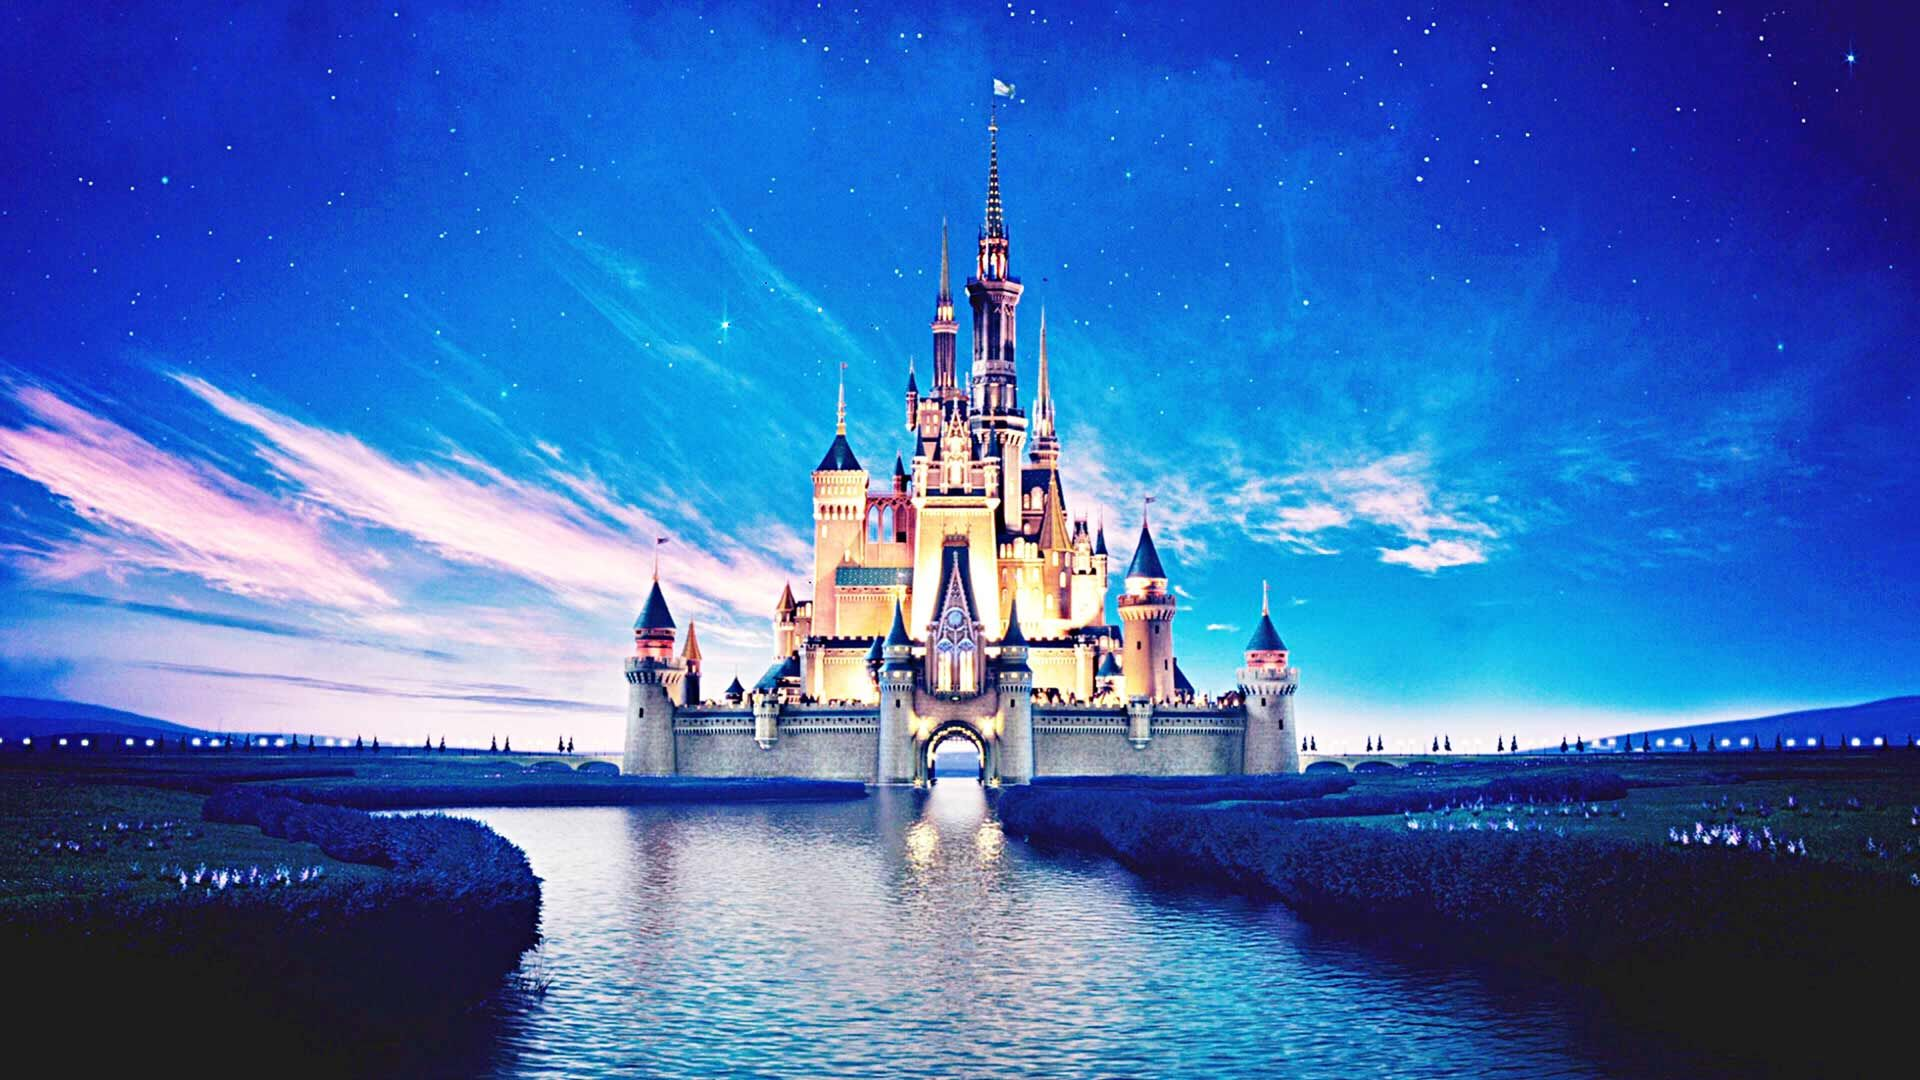 Disney Hd Wallpaper With Images Disney Quiz Disney Castle